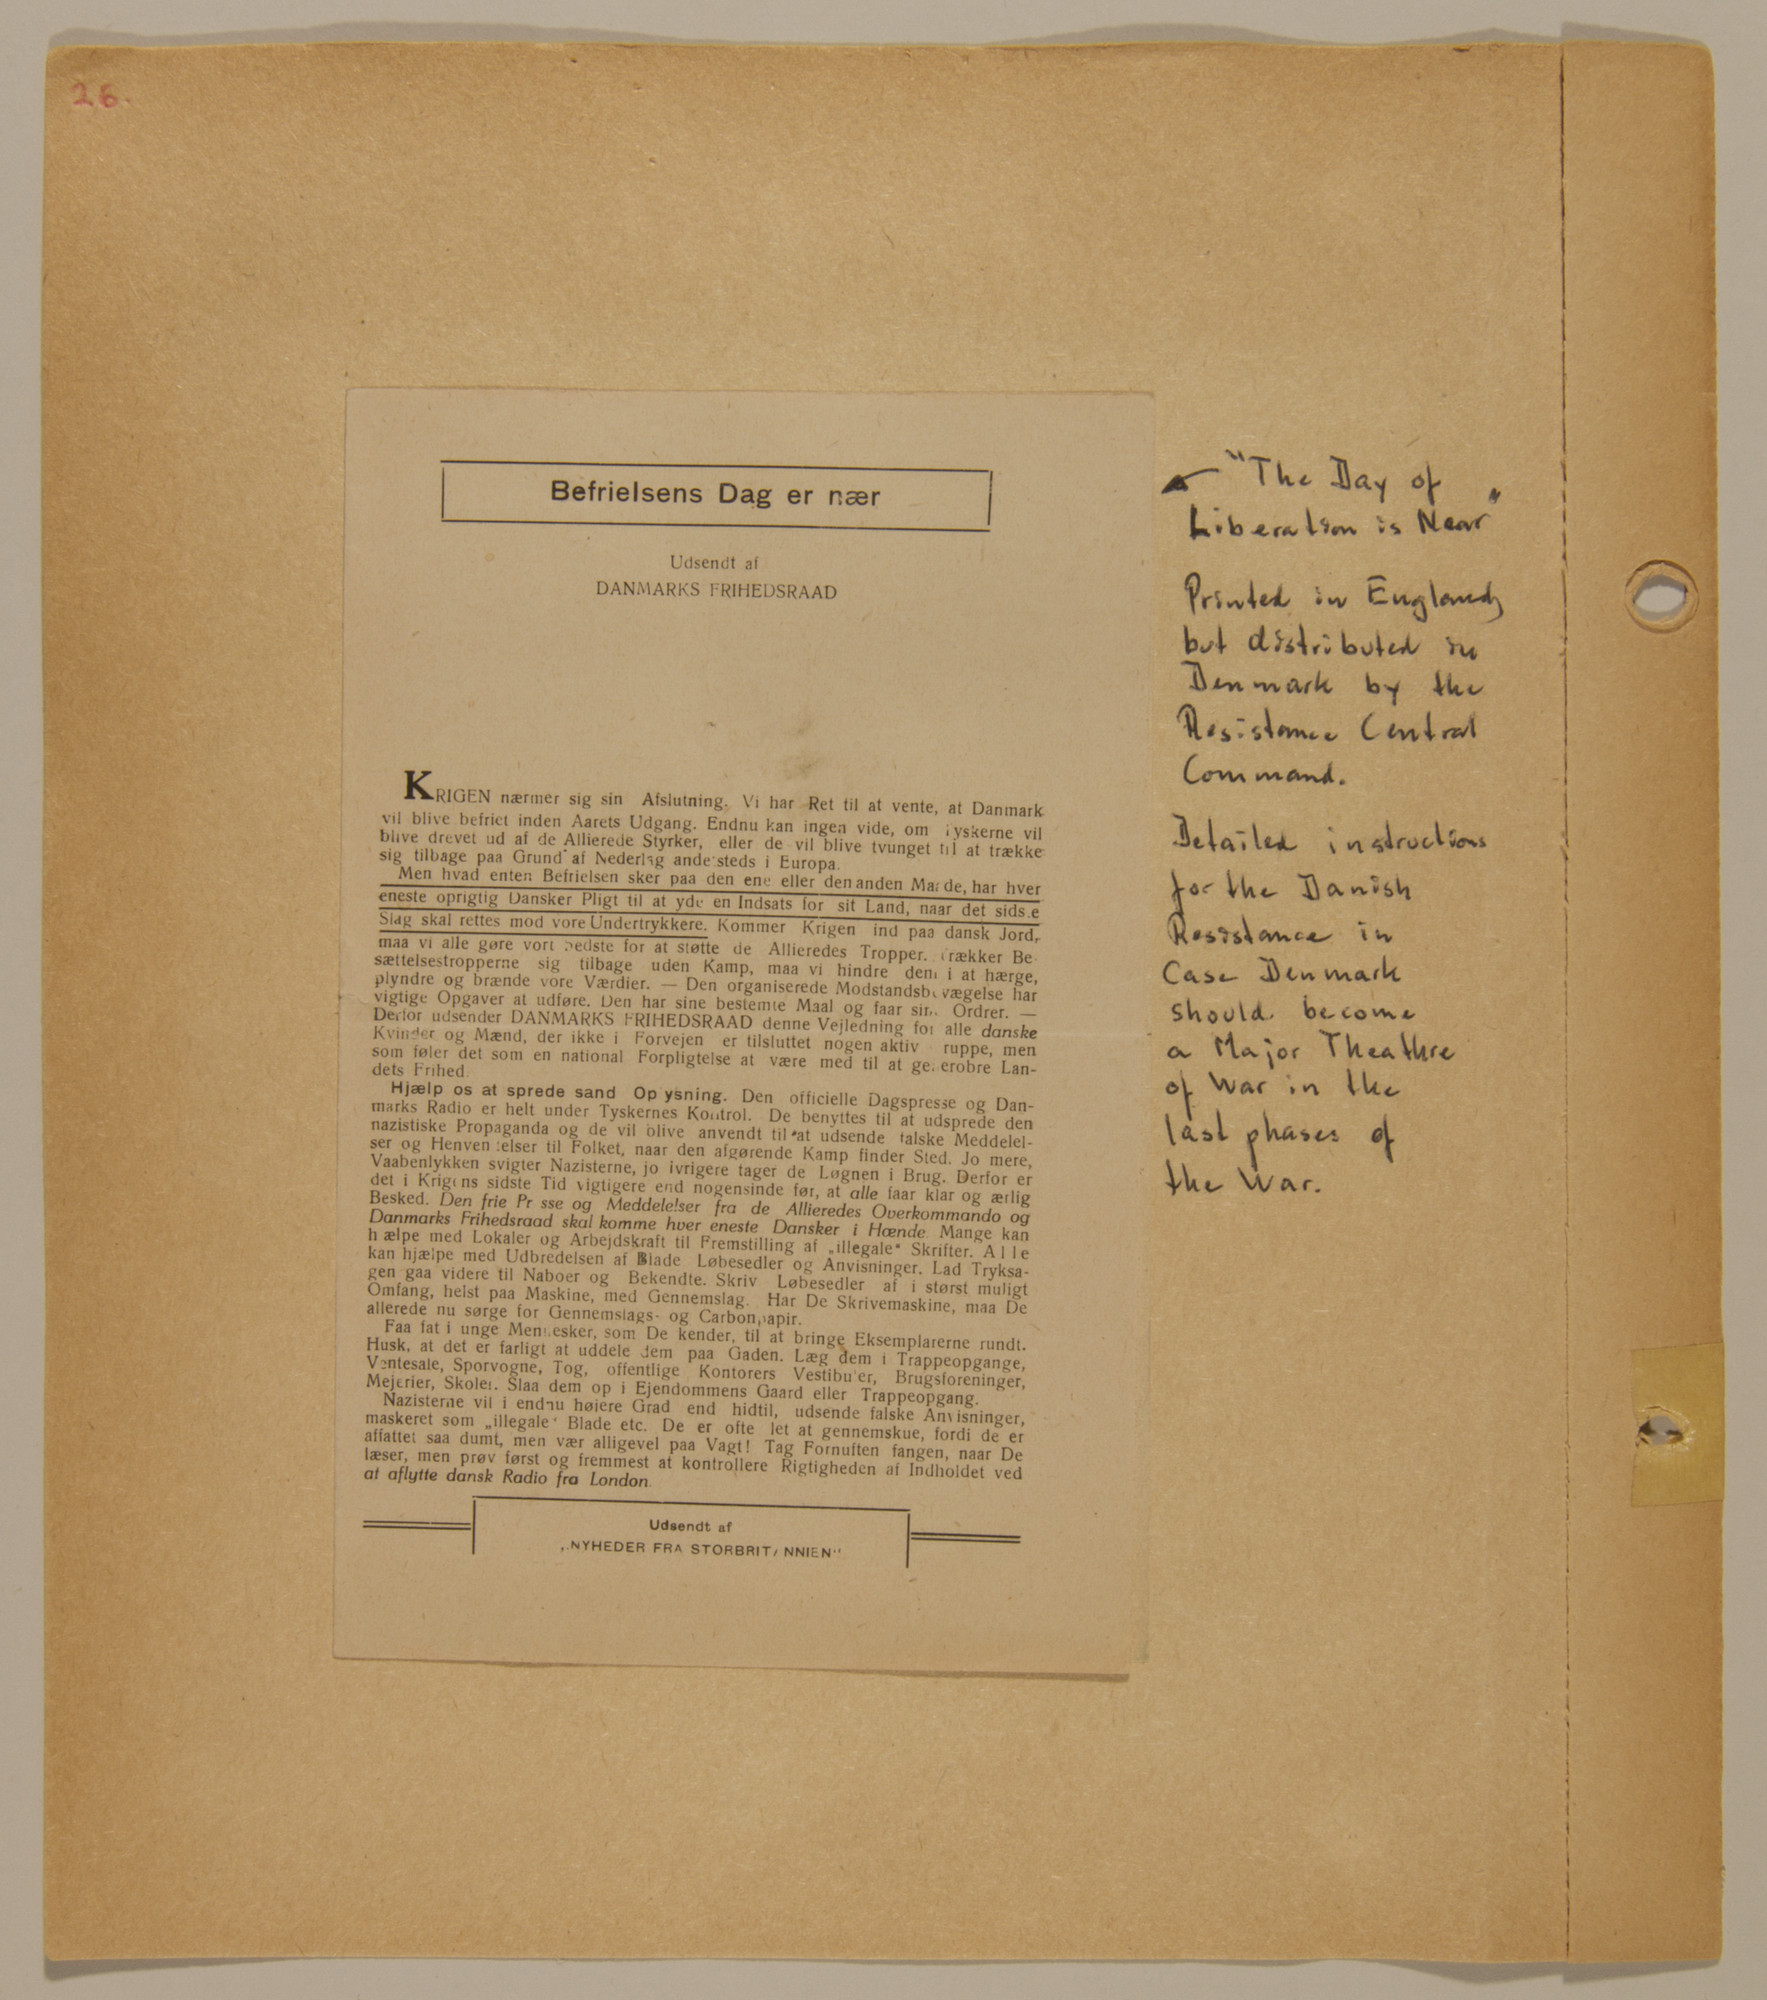 Page from volume five of a set of scrapbooks compiled by Bjorn Sibbern, a Danish policeman and resistance member, documenting the German occupation of Denmark.  This page contains a leaflet printed in England but distributed by the Danish underground stating that the day of liberation is near.